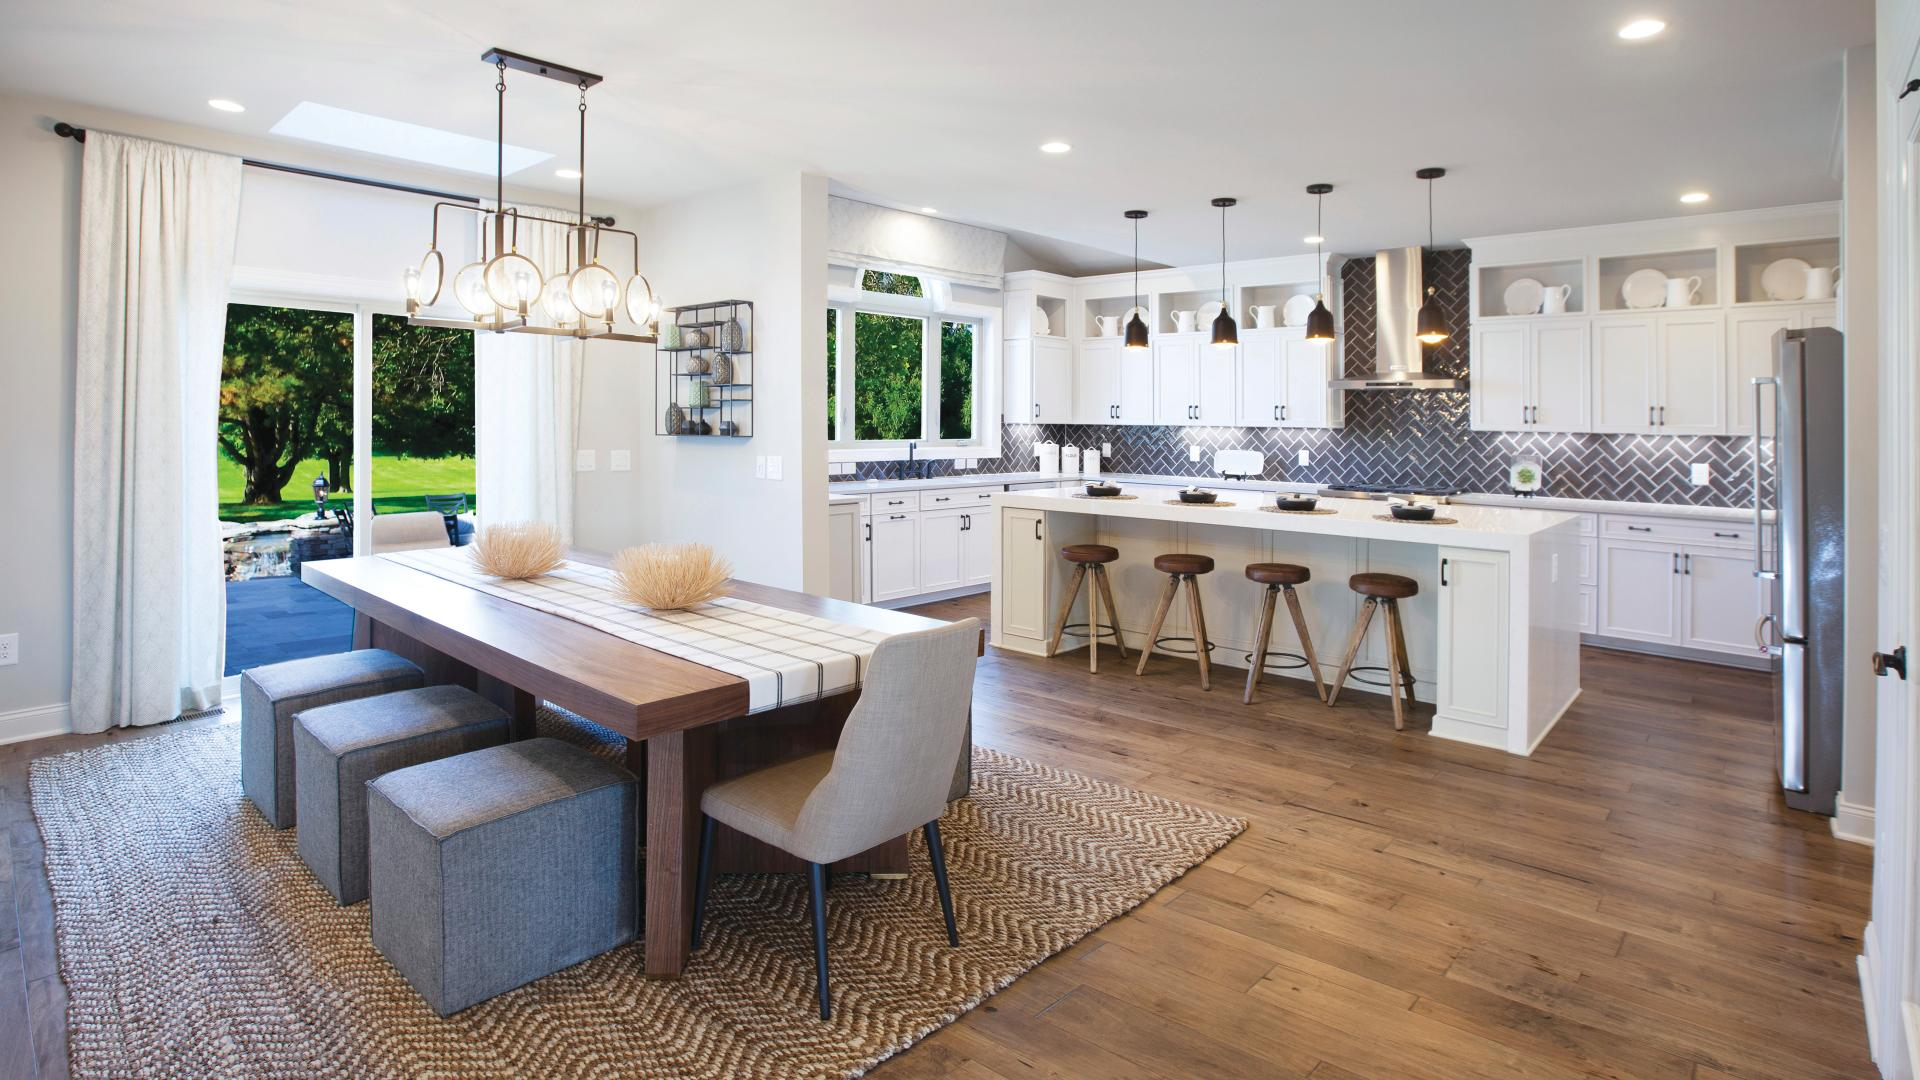 Kitchen with state-of-the-art appliances, designer finishes, and hardwood flooring